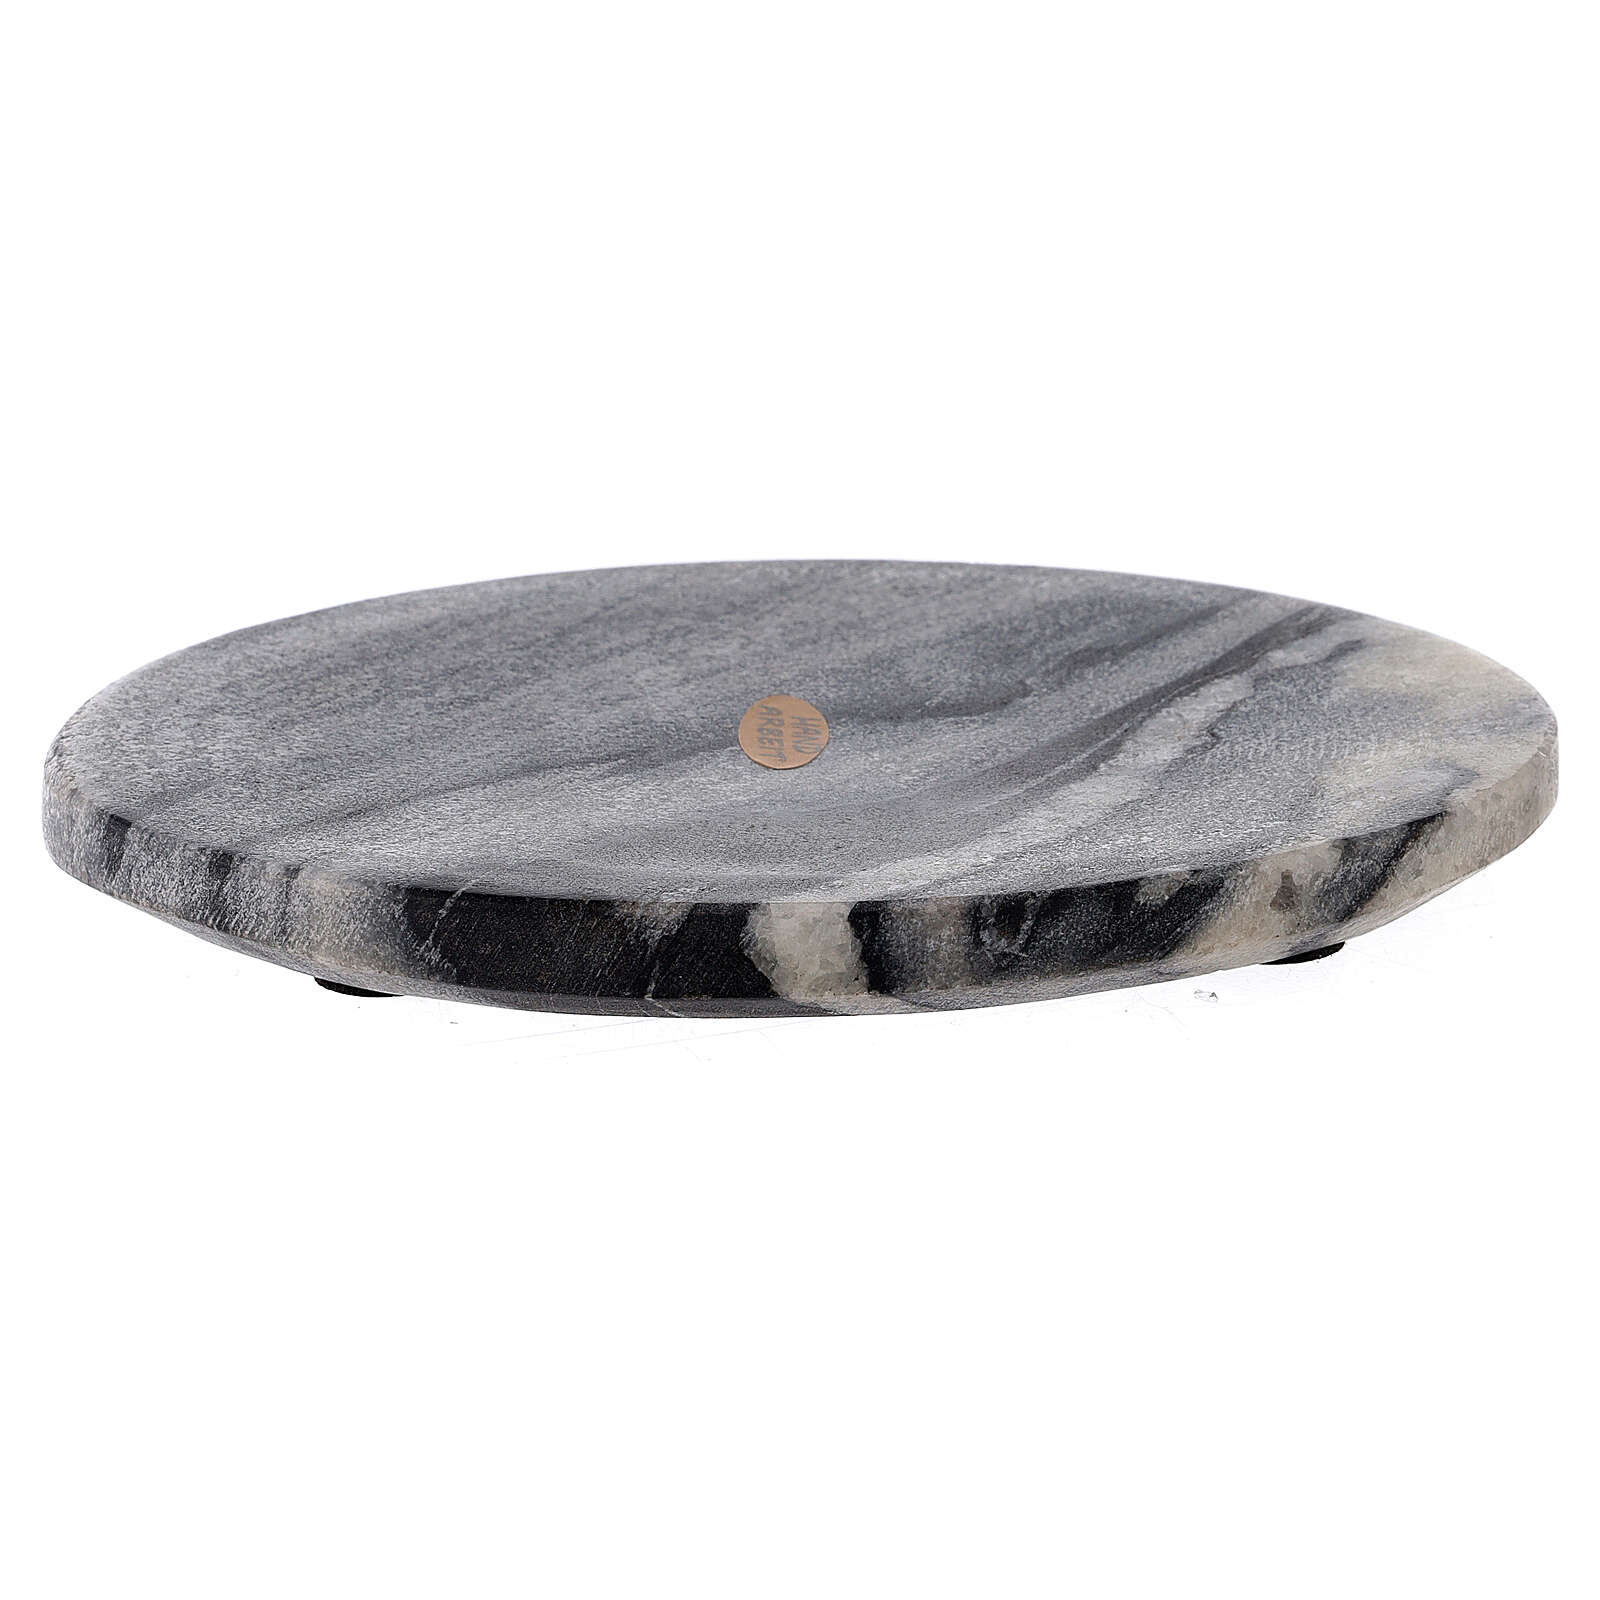 Oval candle holder plate of natural stone 6 3/4x4 3/4 in 3